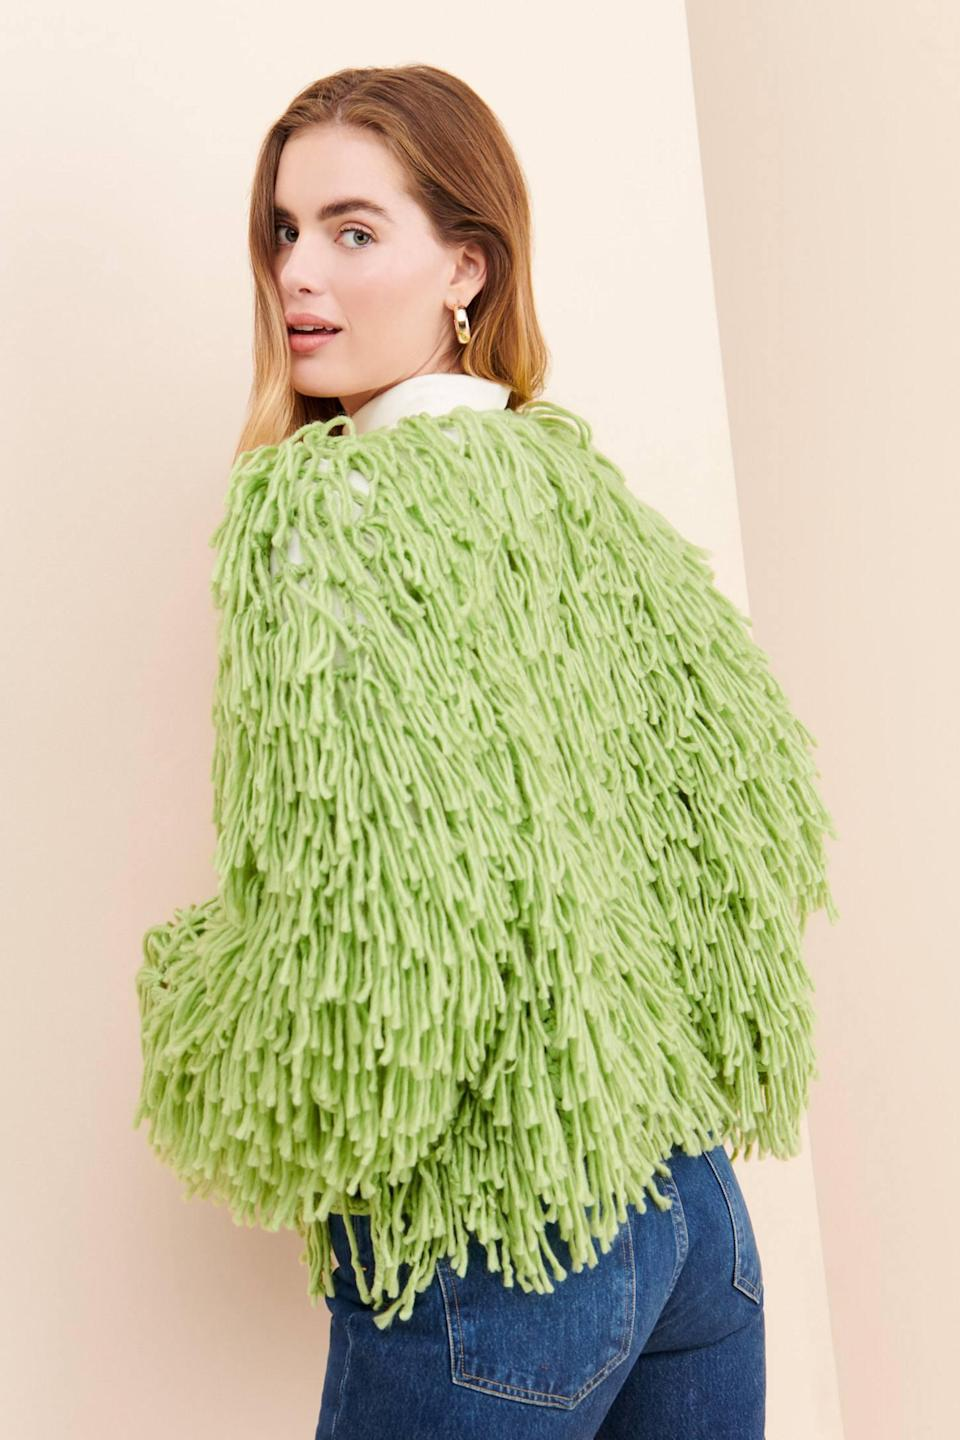 """<br><br><strong>Glamorous Anthropologie</strong> Solid Shaggy Cardigan, $, available at <a href=""""https://go.skimresources.com/?id=30283X879131&url=https%3A%2F%2Fwww.anthropologie.com%2Fshop%2Fglamorous-solid-shaggy-cardigan"""" rel=""""nofollow noopener"""" target=""""_blank"""" data-ylk=""""slk:Anthropologie"""" class=""""link rapid-noclick-resp"""">Anthropologie</a>"""